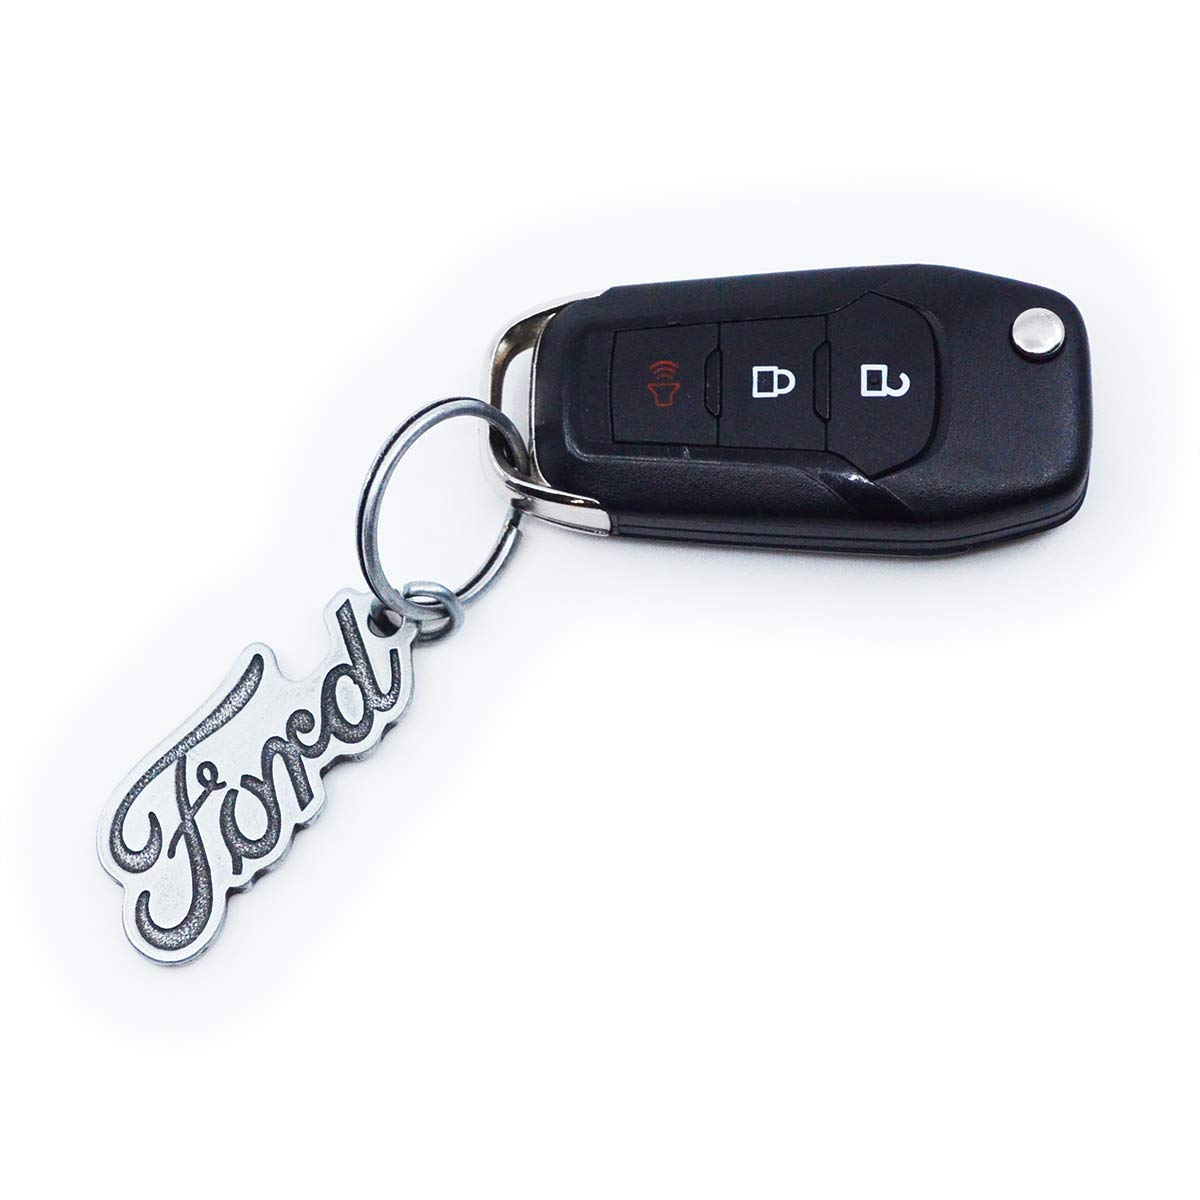 Black Zinc Alloy Heavy Duty Durable Car Key Chains for Men and Women TECHSON Key Chain with Clip Hook and 2 Extra Detachable Rings